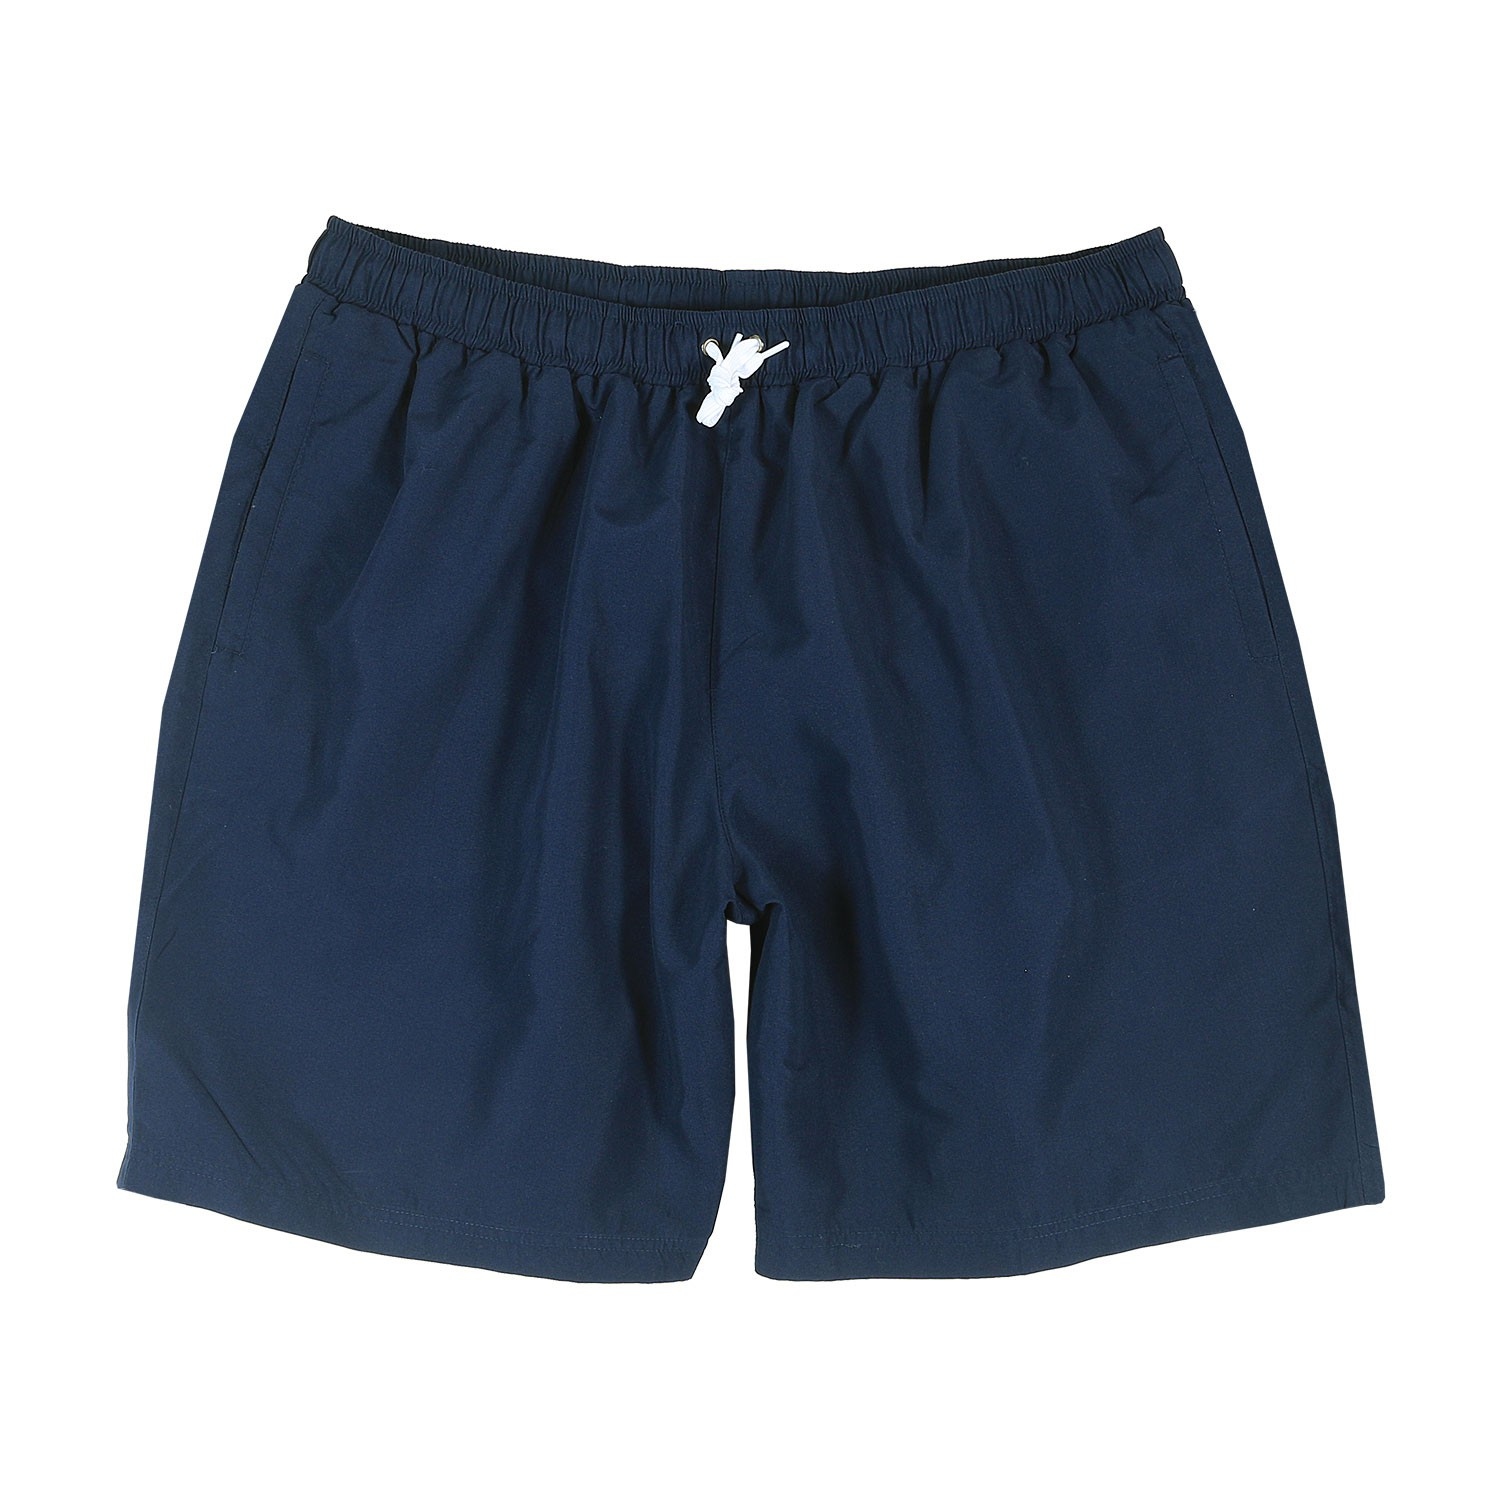 Detail Image to Abraxas swimming trunks in navy up to oversize 10XL